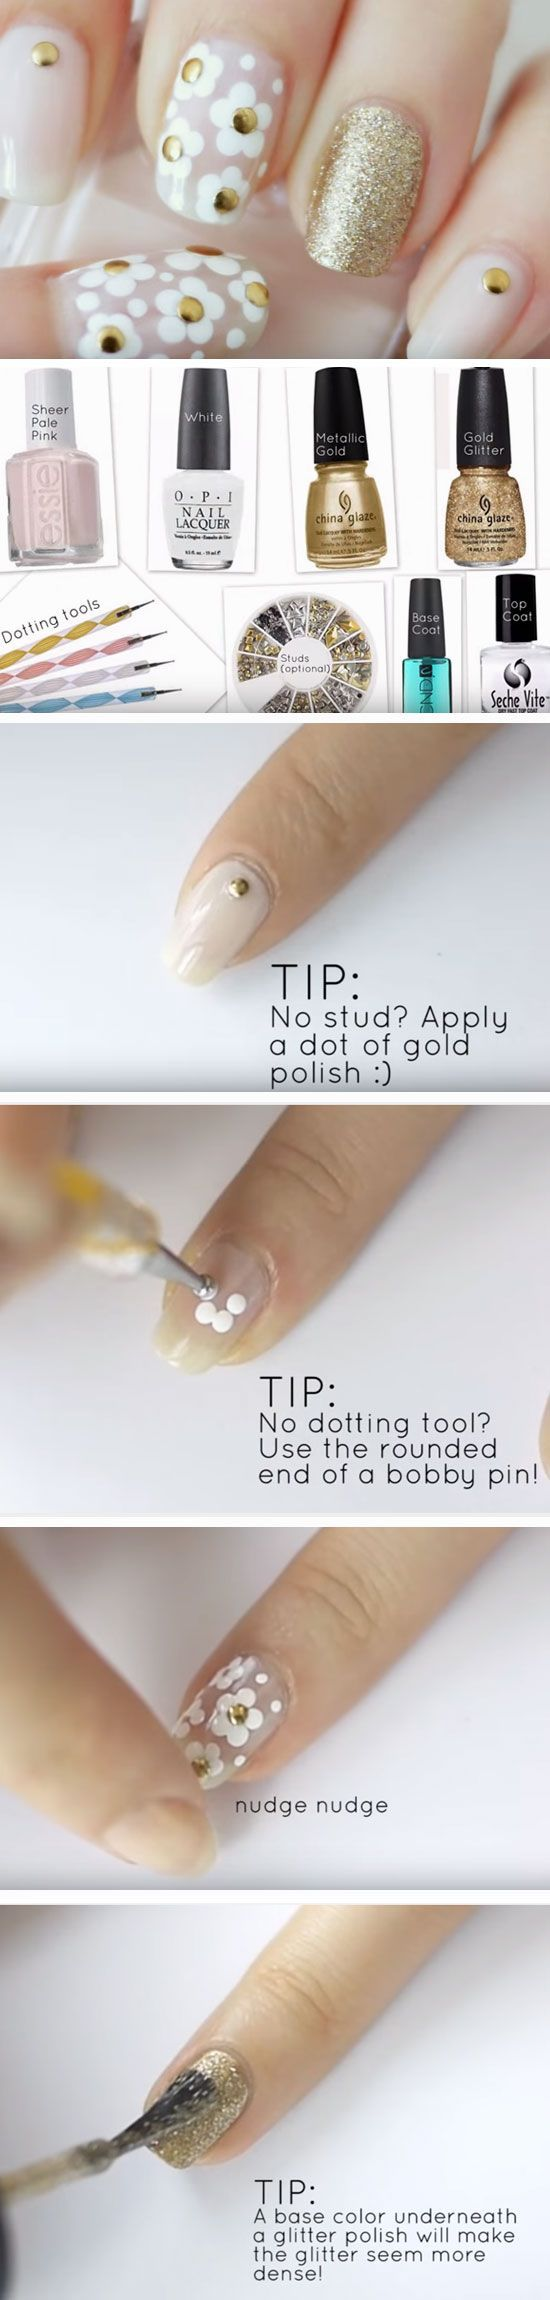 #make-up #nails #gold polish #fashion #mode 2016 Die meisten Trending Nail Art DIYs Sie machen Nailalicious gehen